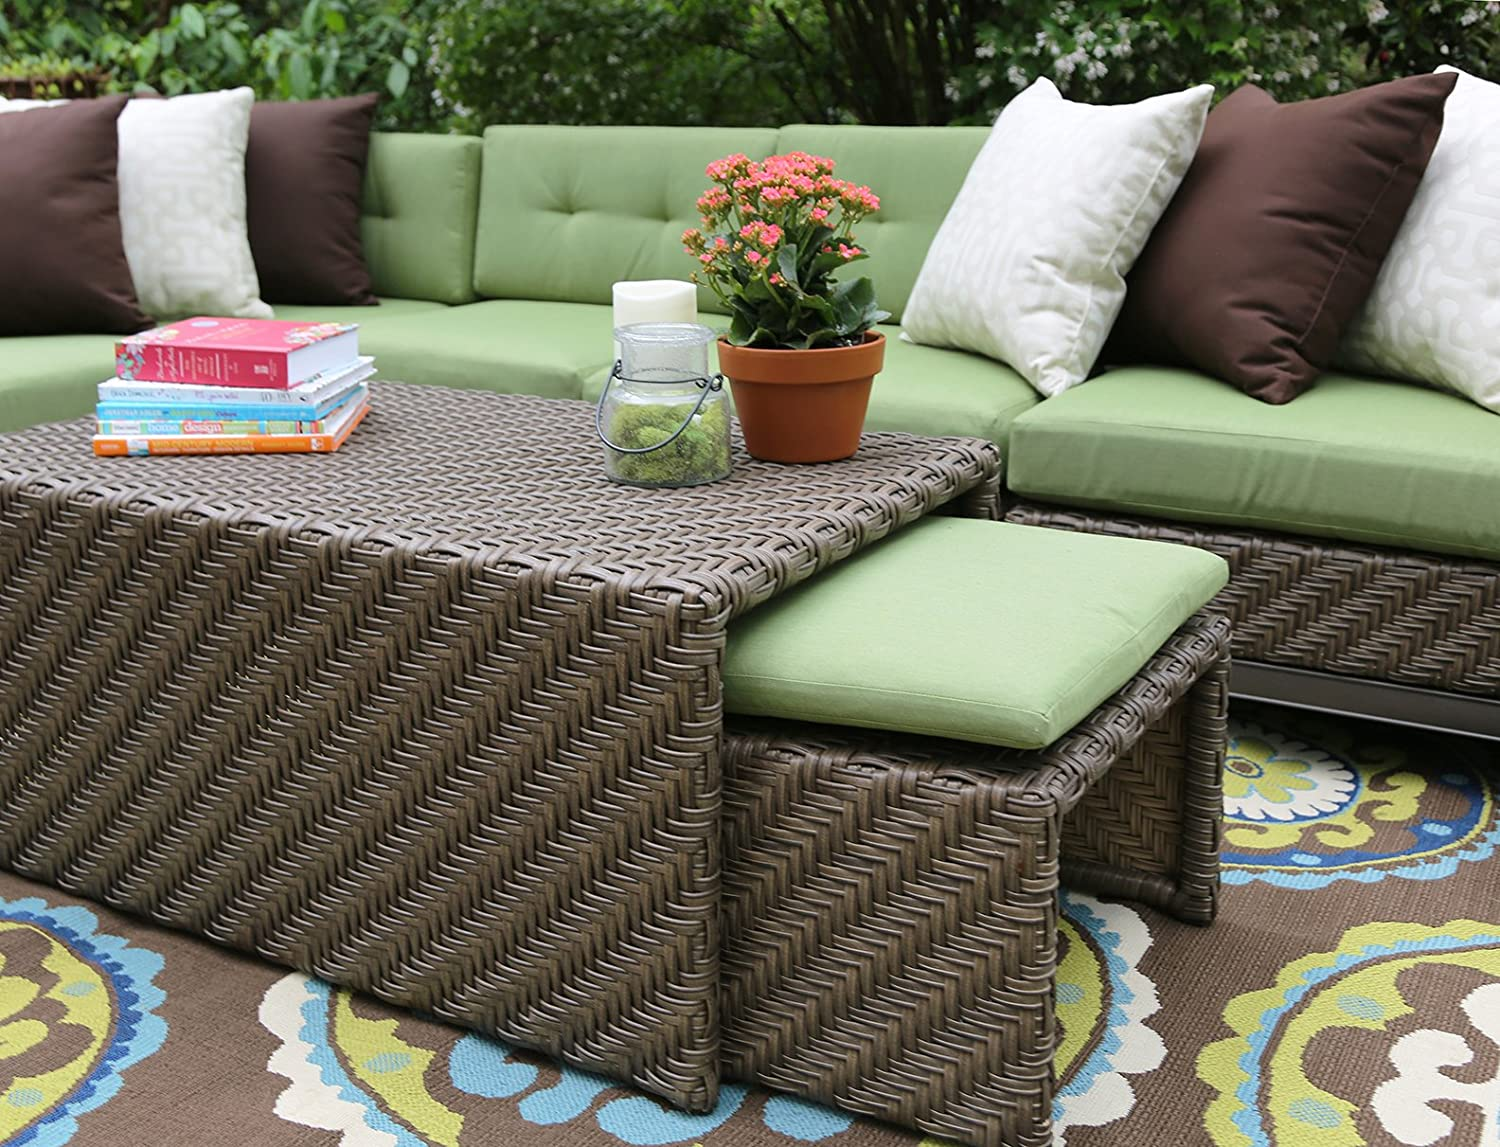 Amazon.com  AE Outdoor H&ton 8 Piece Sectional with Sunbrella Fabric  Garden u0026 Outdoor : sunbrella sectional - Sectionals, Sofas & Couches